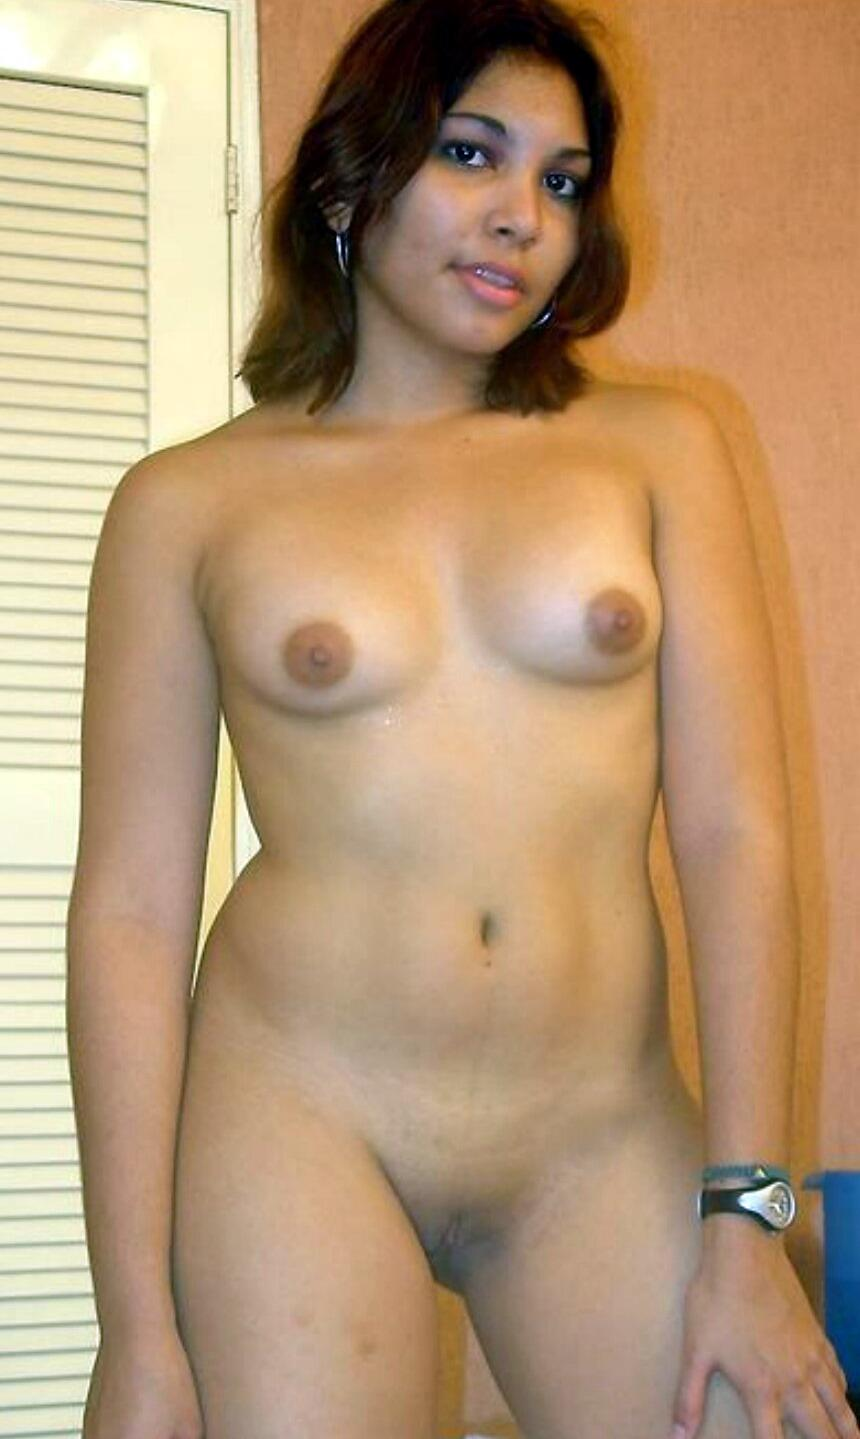 Reserve Indian neked small girls nipple